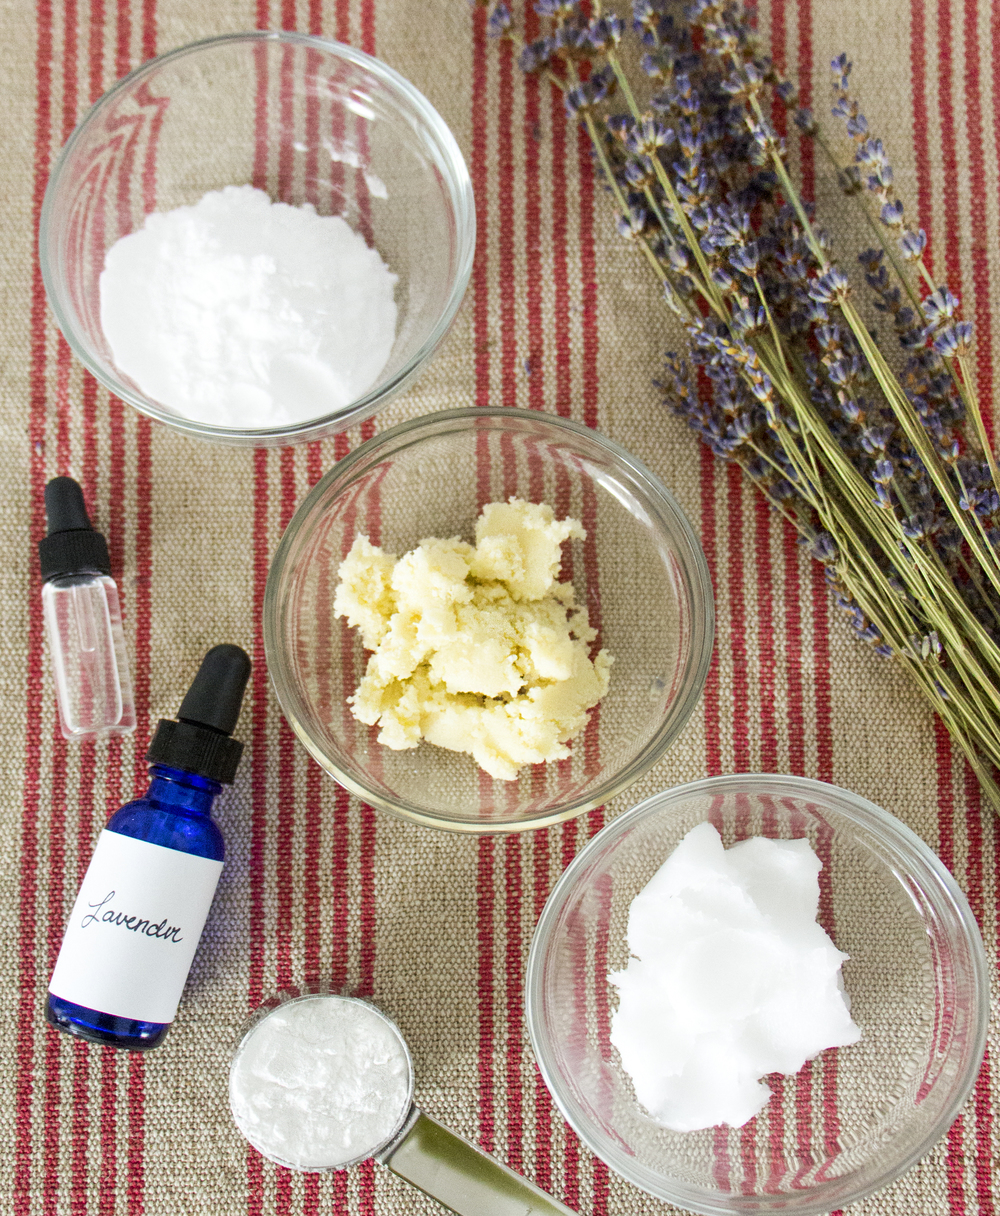 ingredients to make all-natural lavender deodorant | RECIPE on hotforfoodblog.com